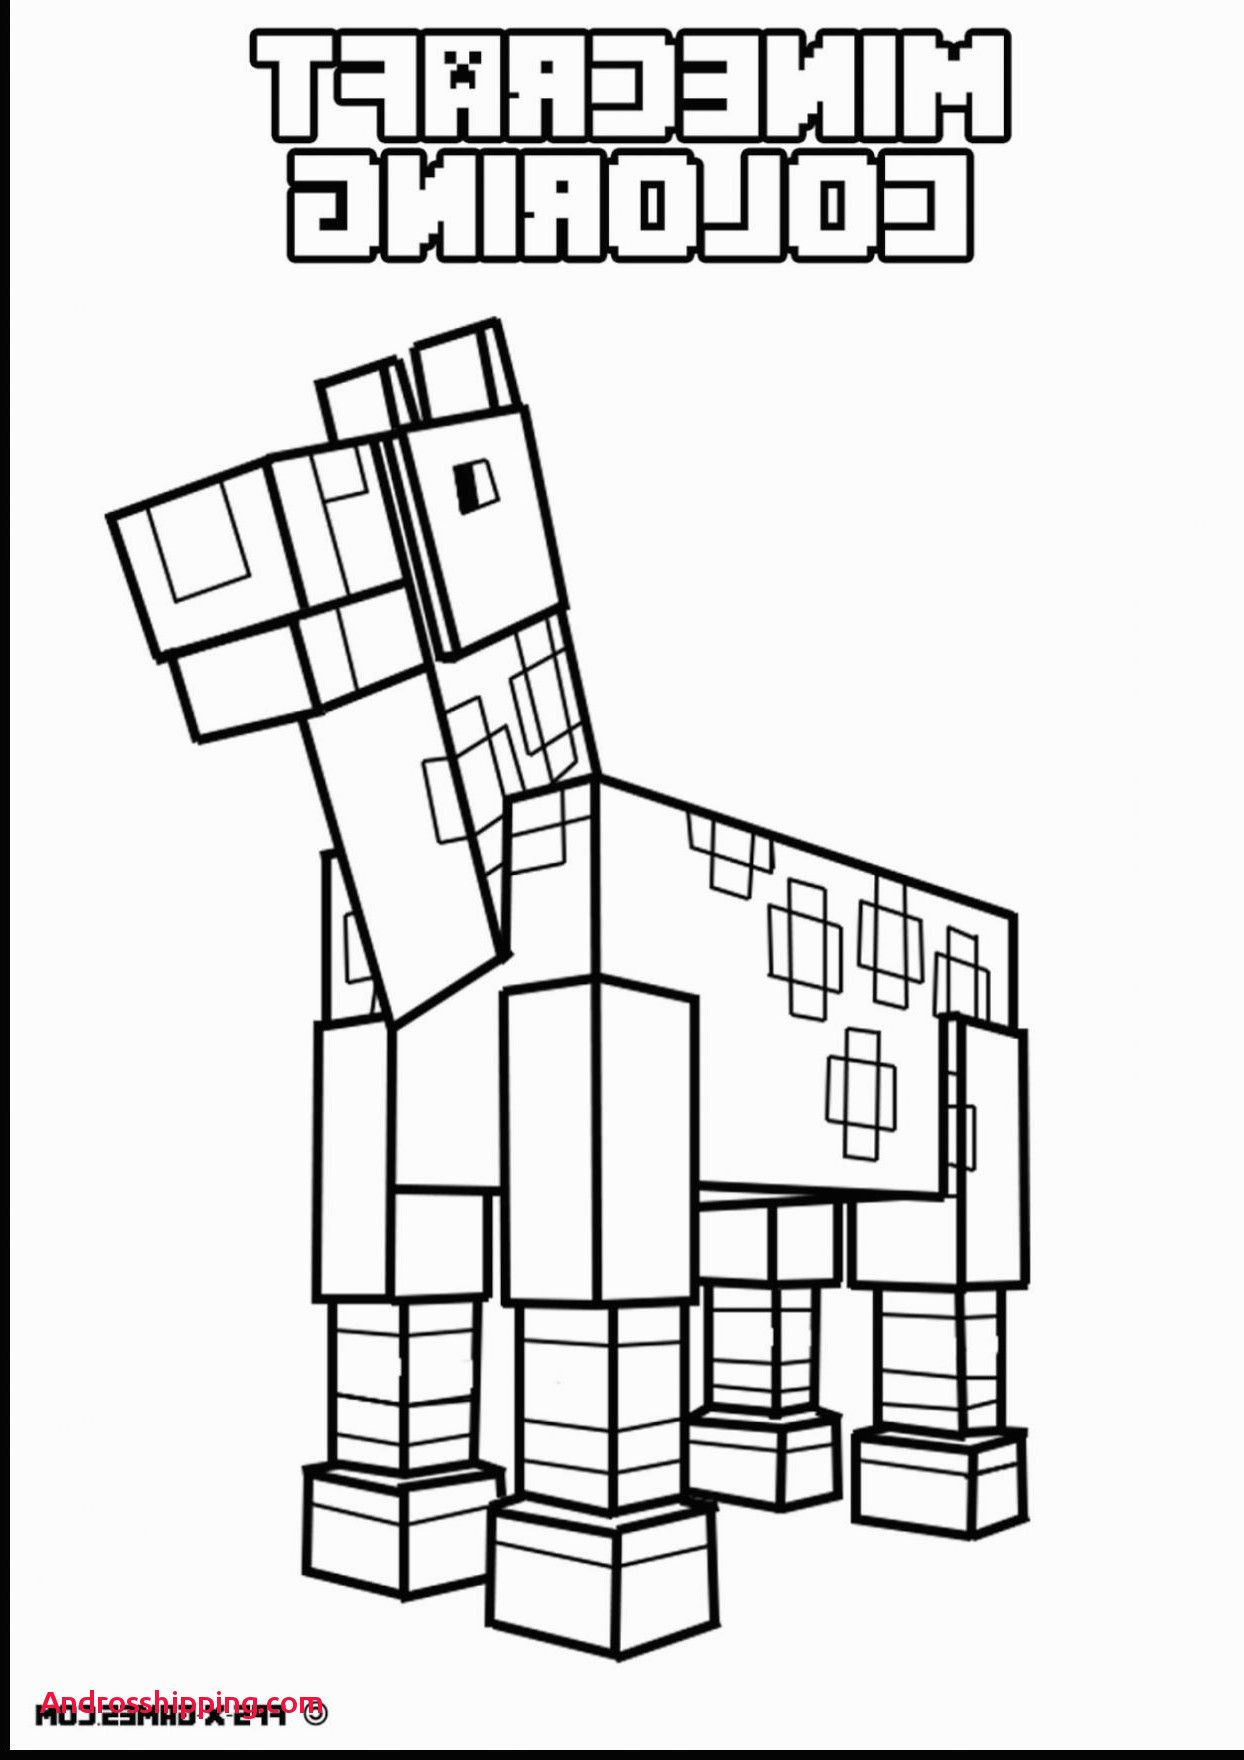 Minecraft Coloring Page Printable Youngandtae Com Minecraft Coloring Pages Animal Coloring Pages Coloring Pages